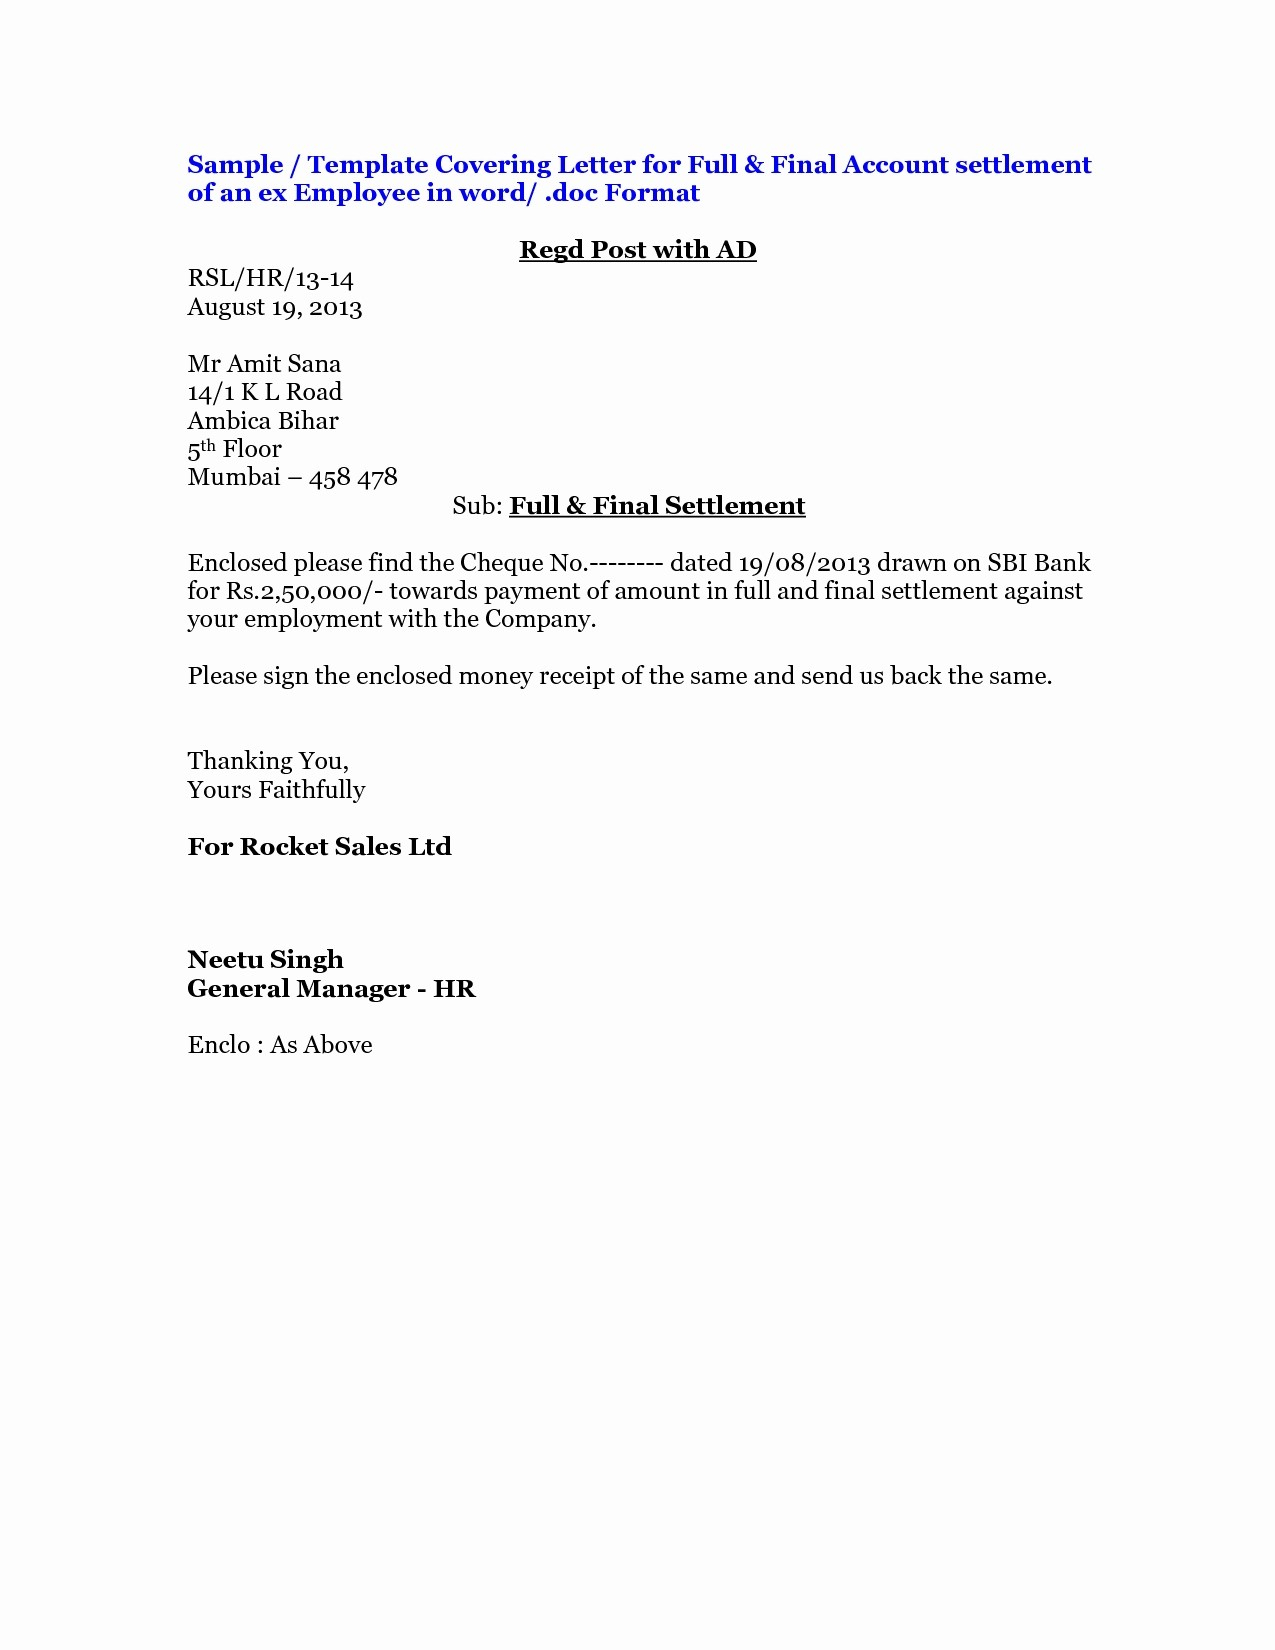 In Full and Final Settlement Letter Template - Covering Letter format for Agreement New Settlement Agreement